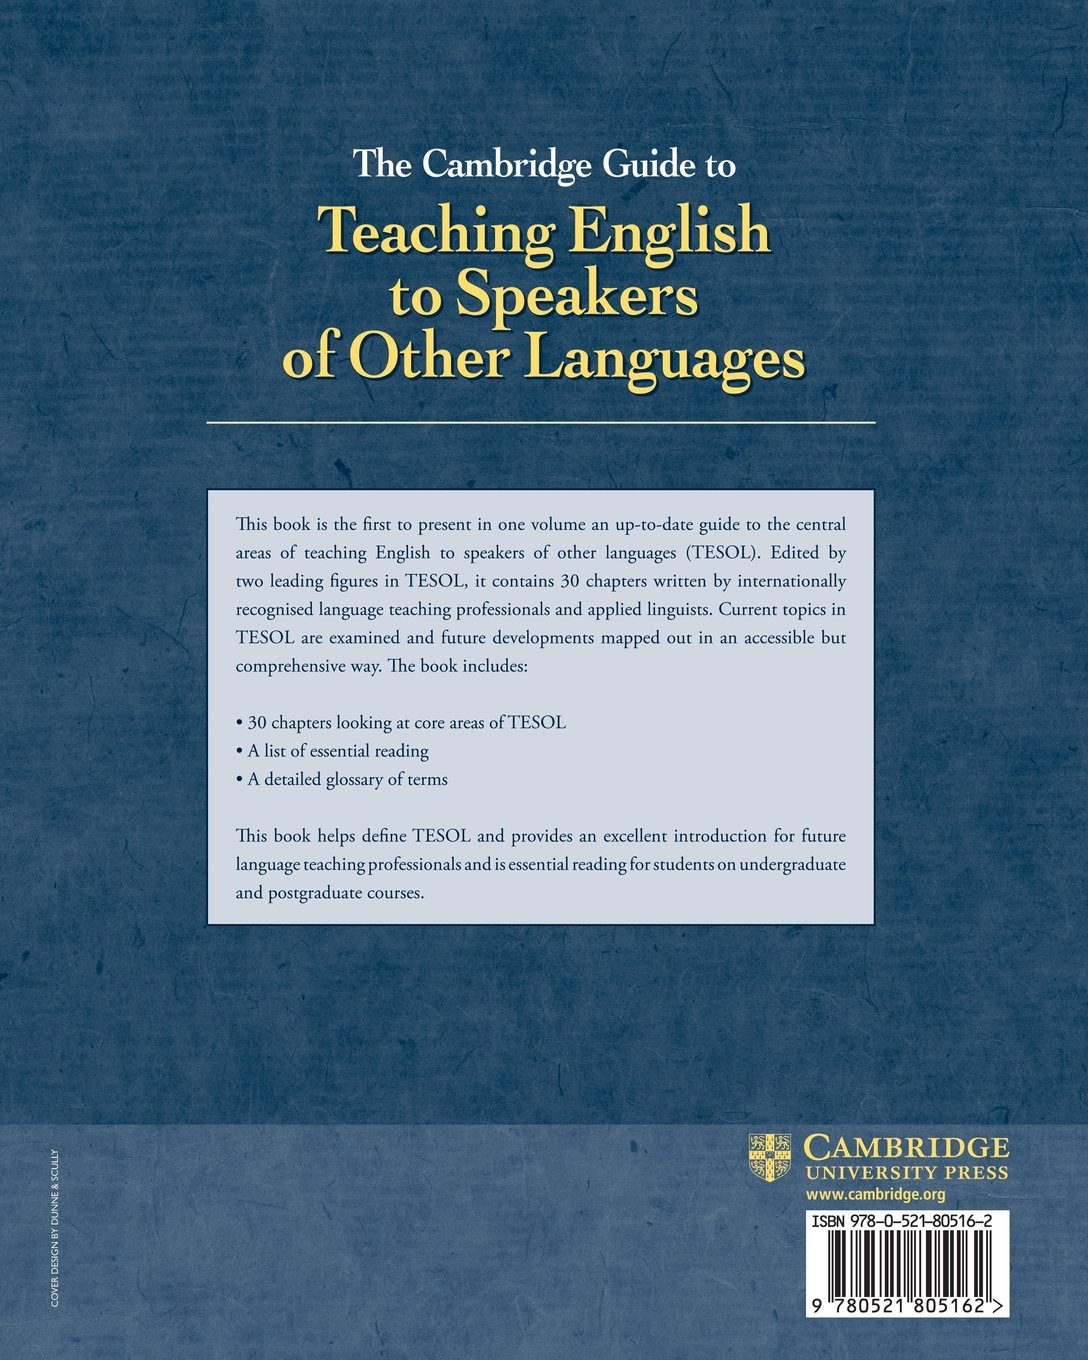 The Cambridge Guide to Teaching English to Speakers of Other Languages:  Amazon.co.uk: Ronald Carter: Books